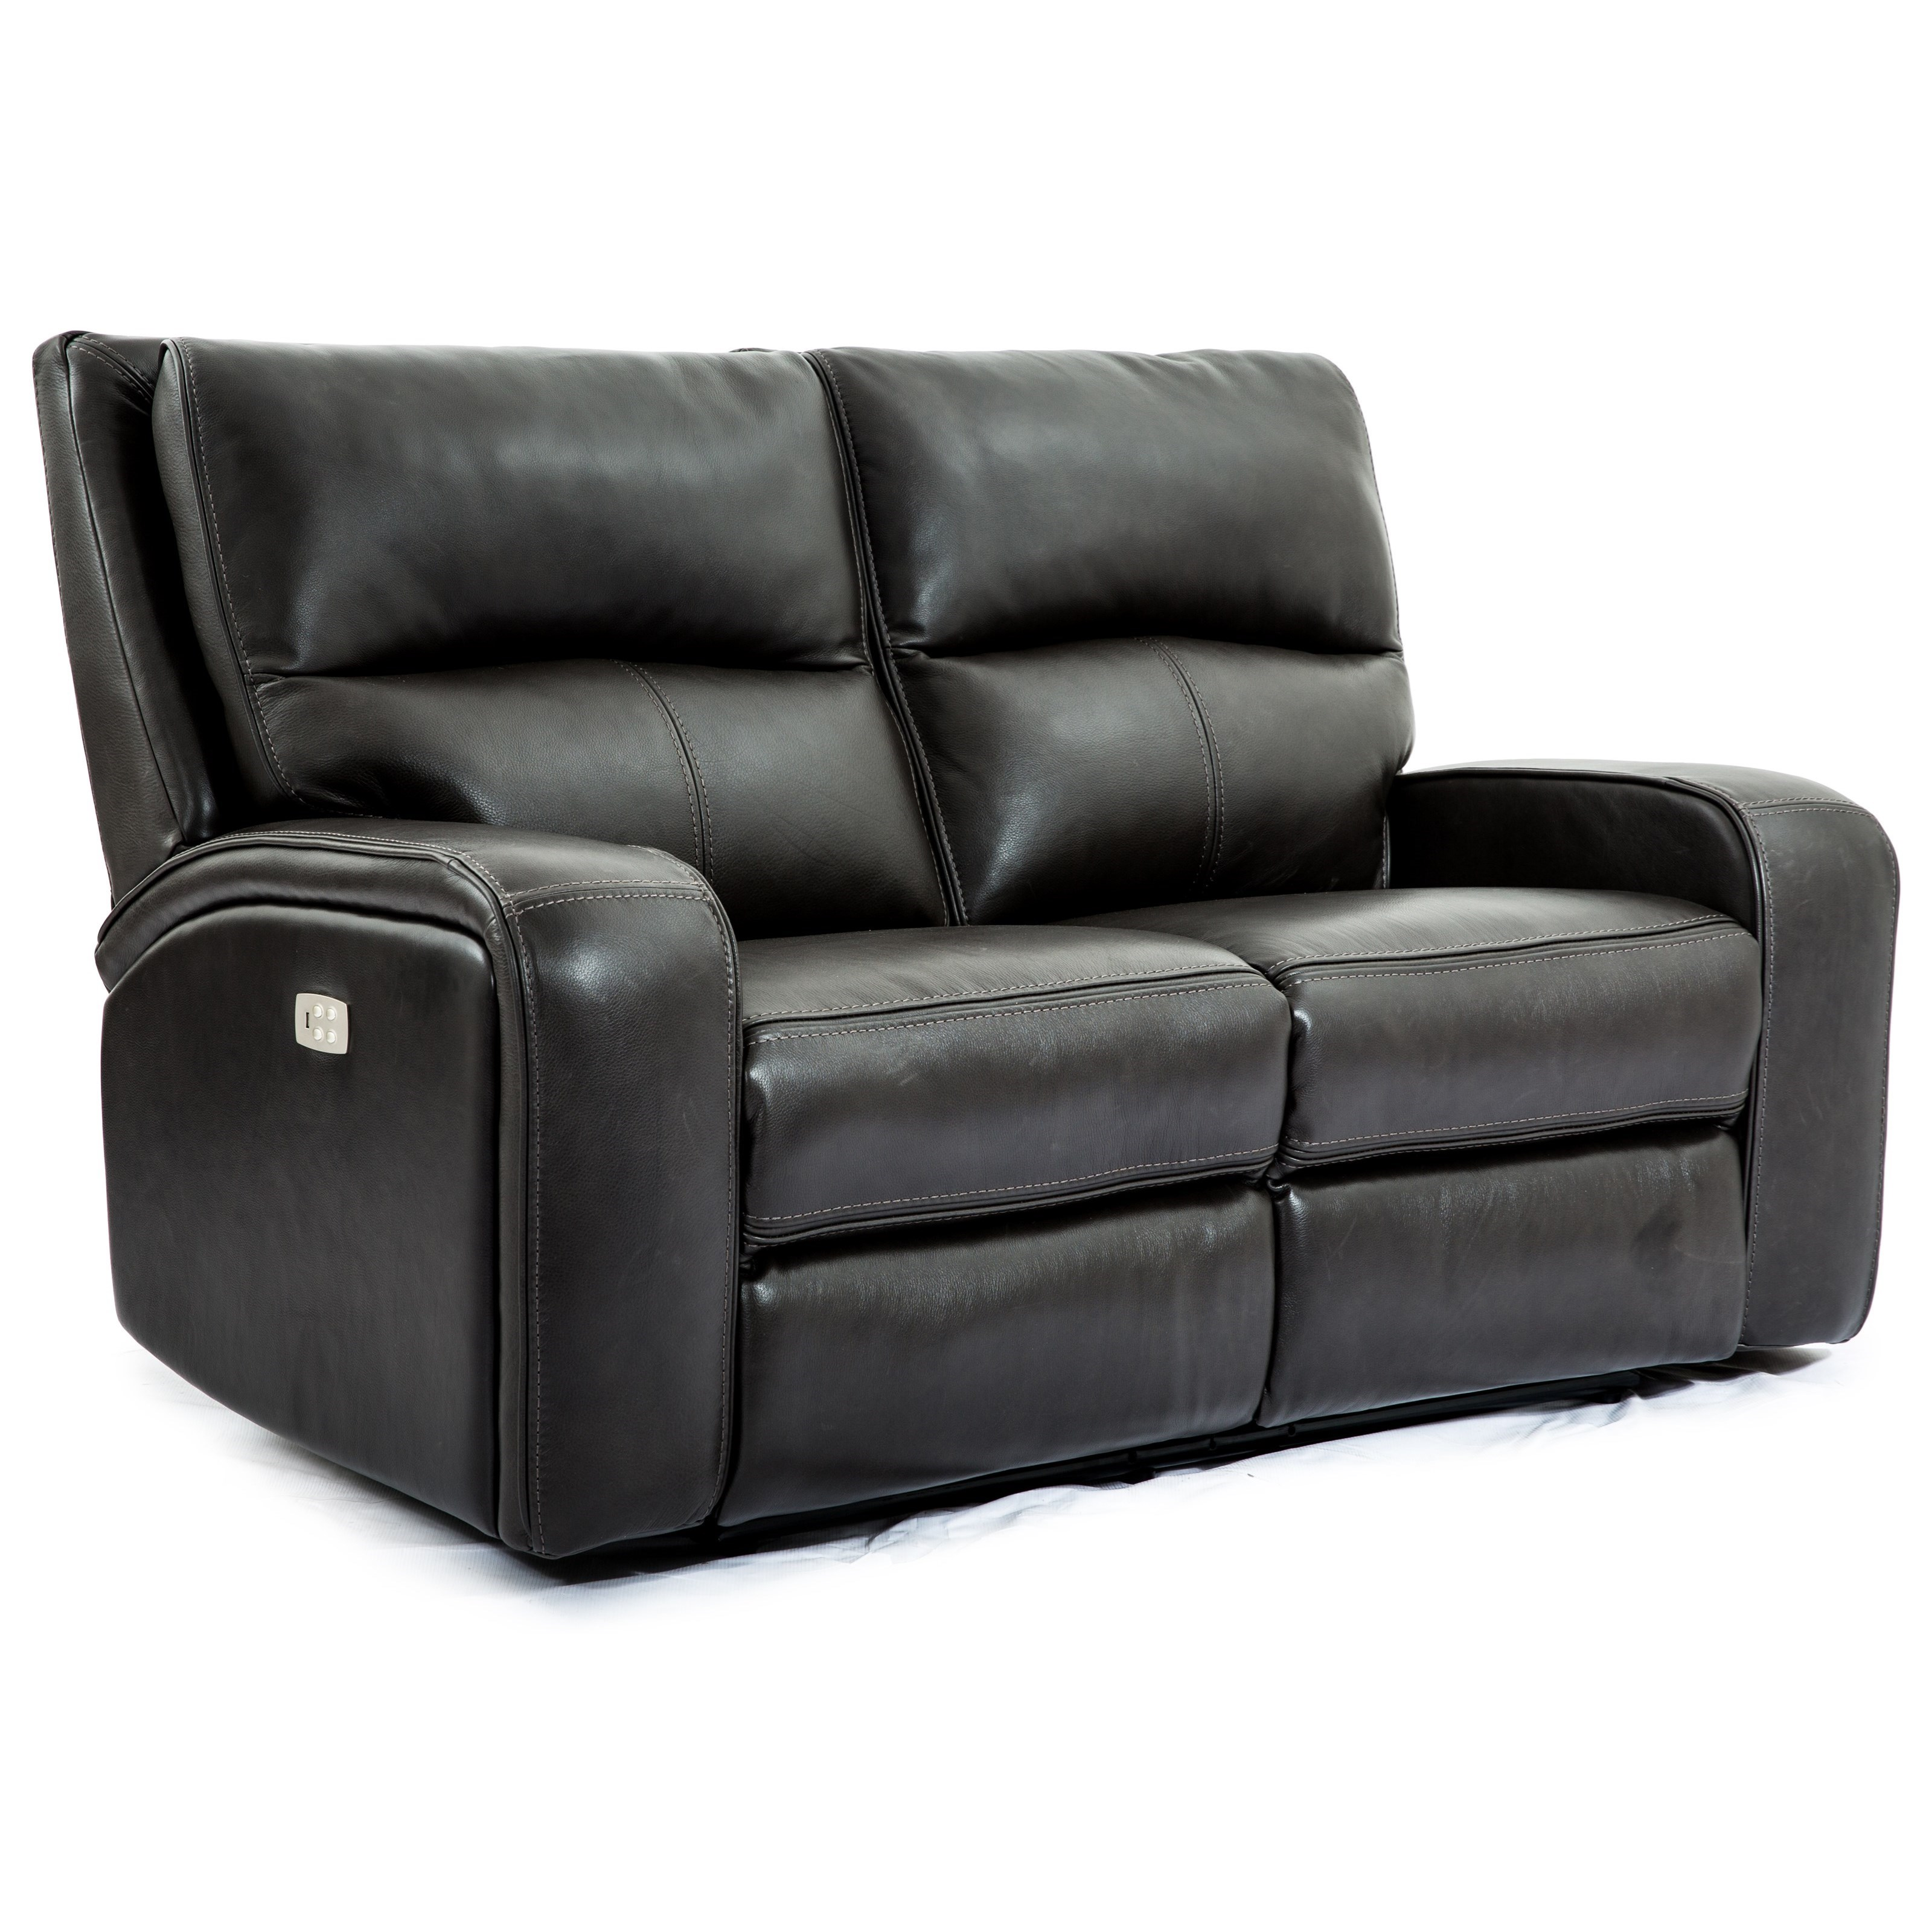 Peachy Cheers 5168Hm Reclining Power Loveseat With Power Headrests Ibusinesslaw Wood Chair Design Ideas Ibusinesslaworg